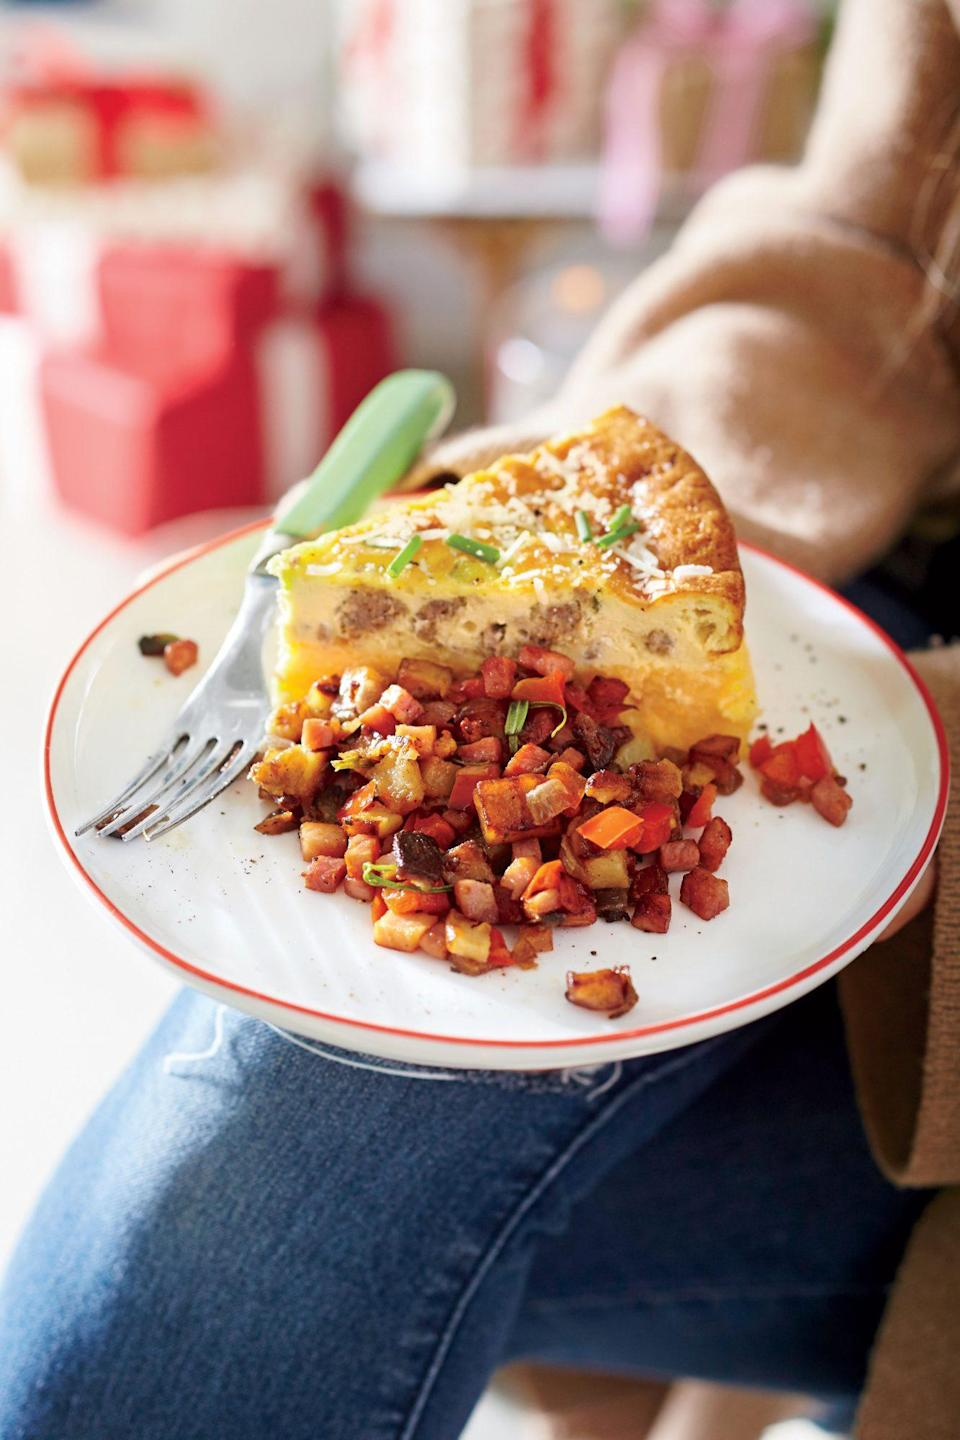 """<p><b>Recipe: </b><a href=""""https://www.southernliving.com/recipes/sausage-and-cheese-grits-quiche-recipe"""" rel=""""nofollow noopener"""" target=""""_blank"""" data-ylk=""""slk:Sausage-and-Cheese Grits Quiche"""" class=""""link rapid-noclick-resp""""><b>Sausage-and-Cheese Grits Quiche</b></a></p> <p>We added a Southern touch to this quiche by adding cheesy grits.</p>"""